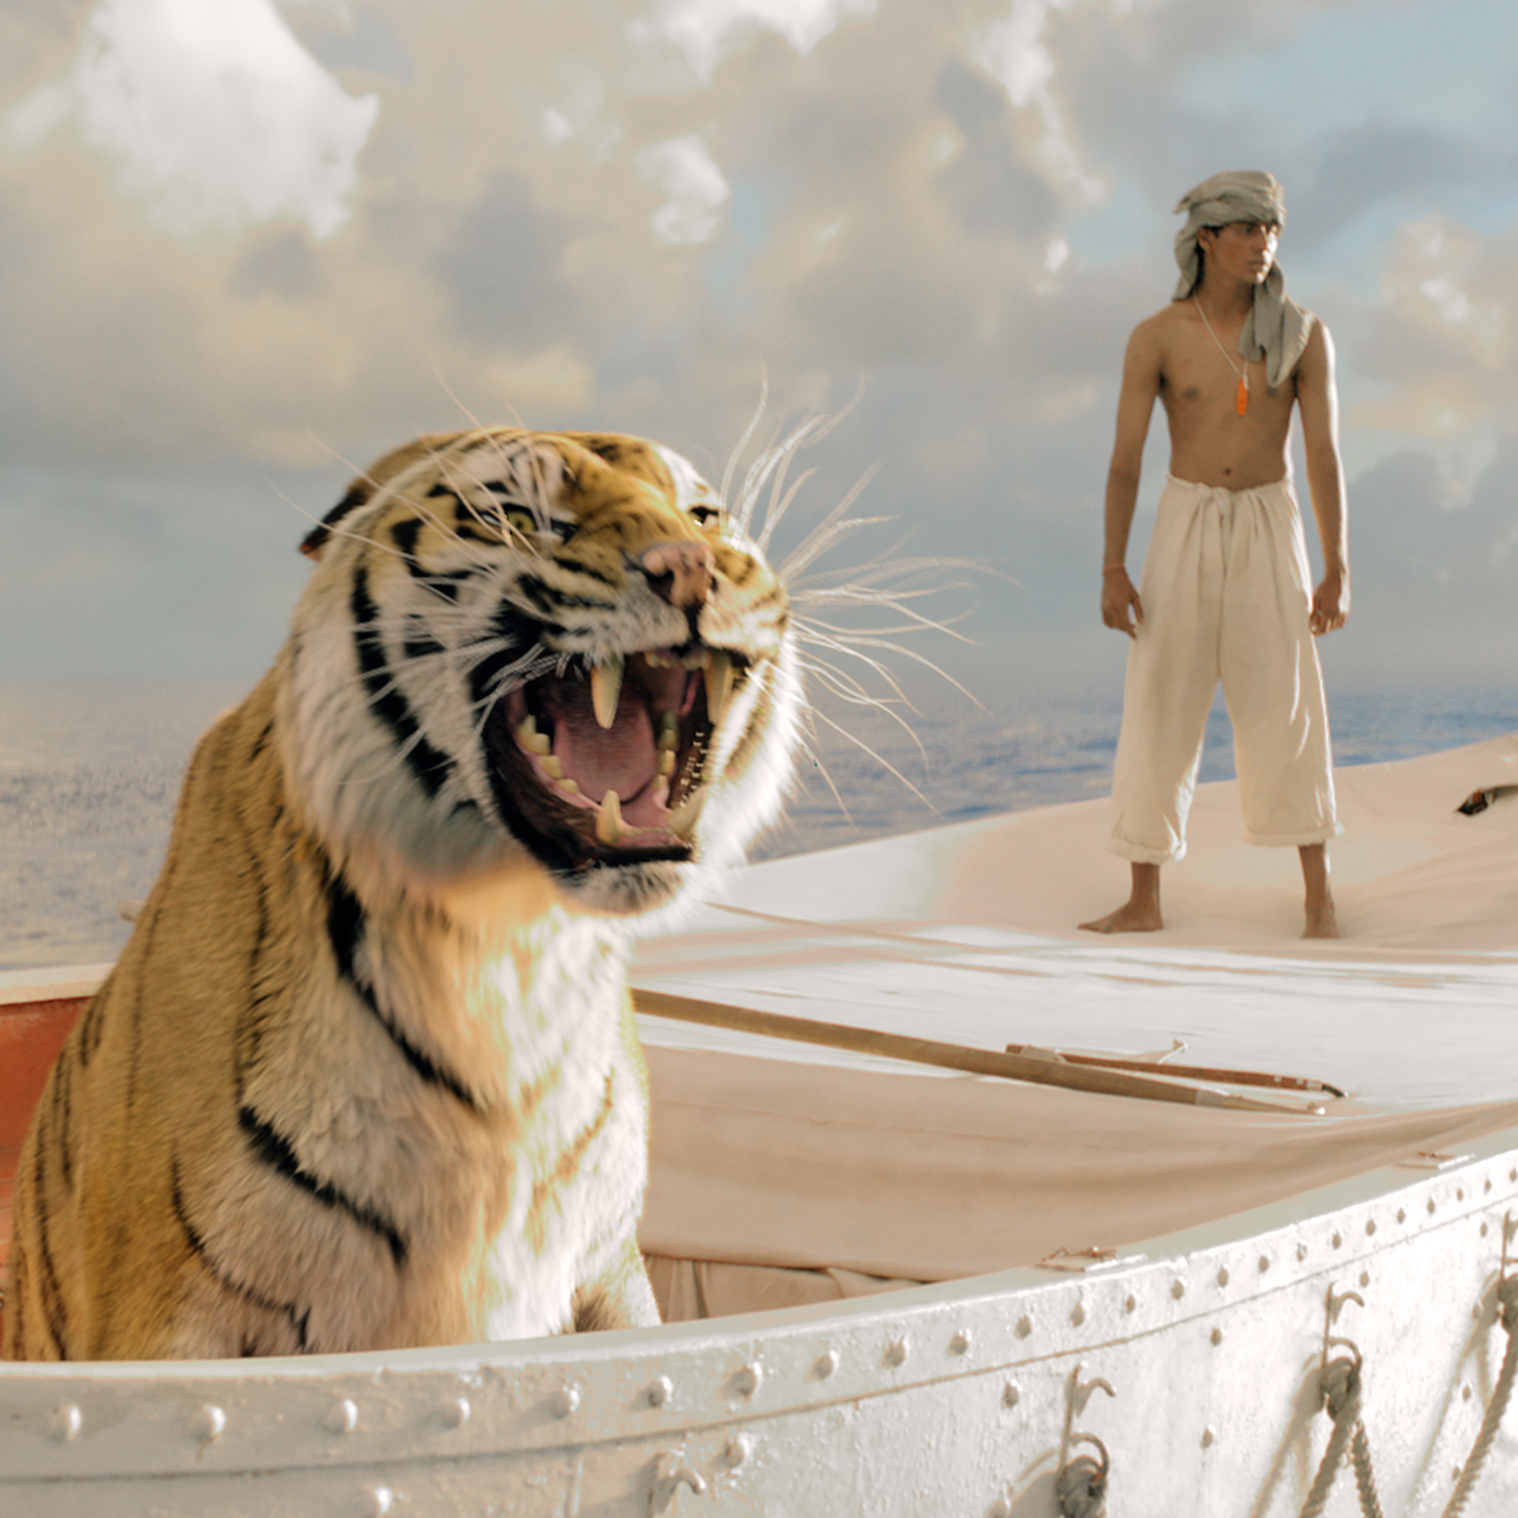 Pi Patel (Suraj Sharma) and a fierce Bengal tiger named Richard Parker must rely on each other to survive an epic journey in Life of Pi.